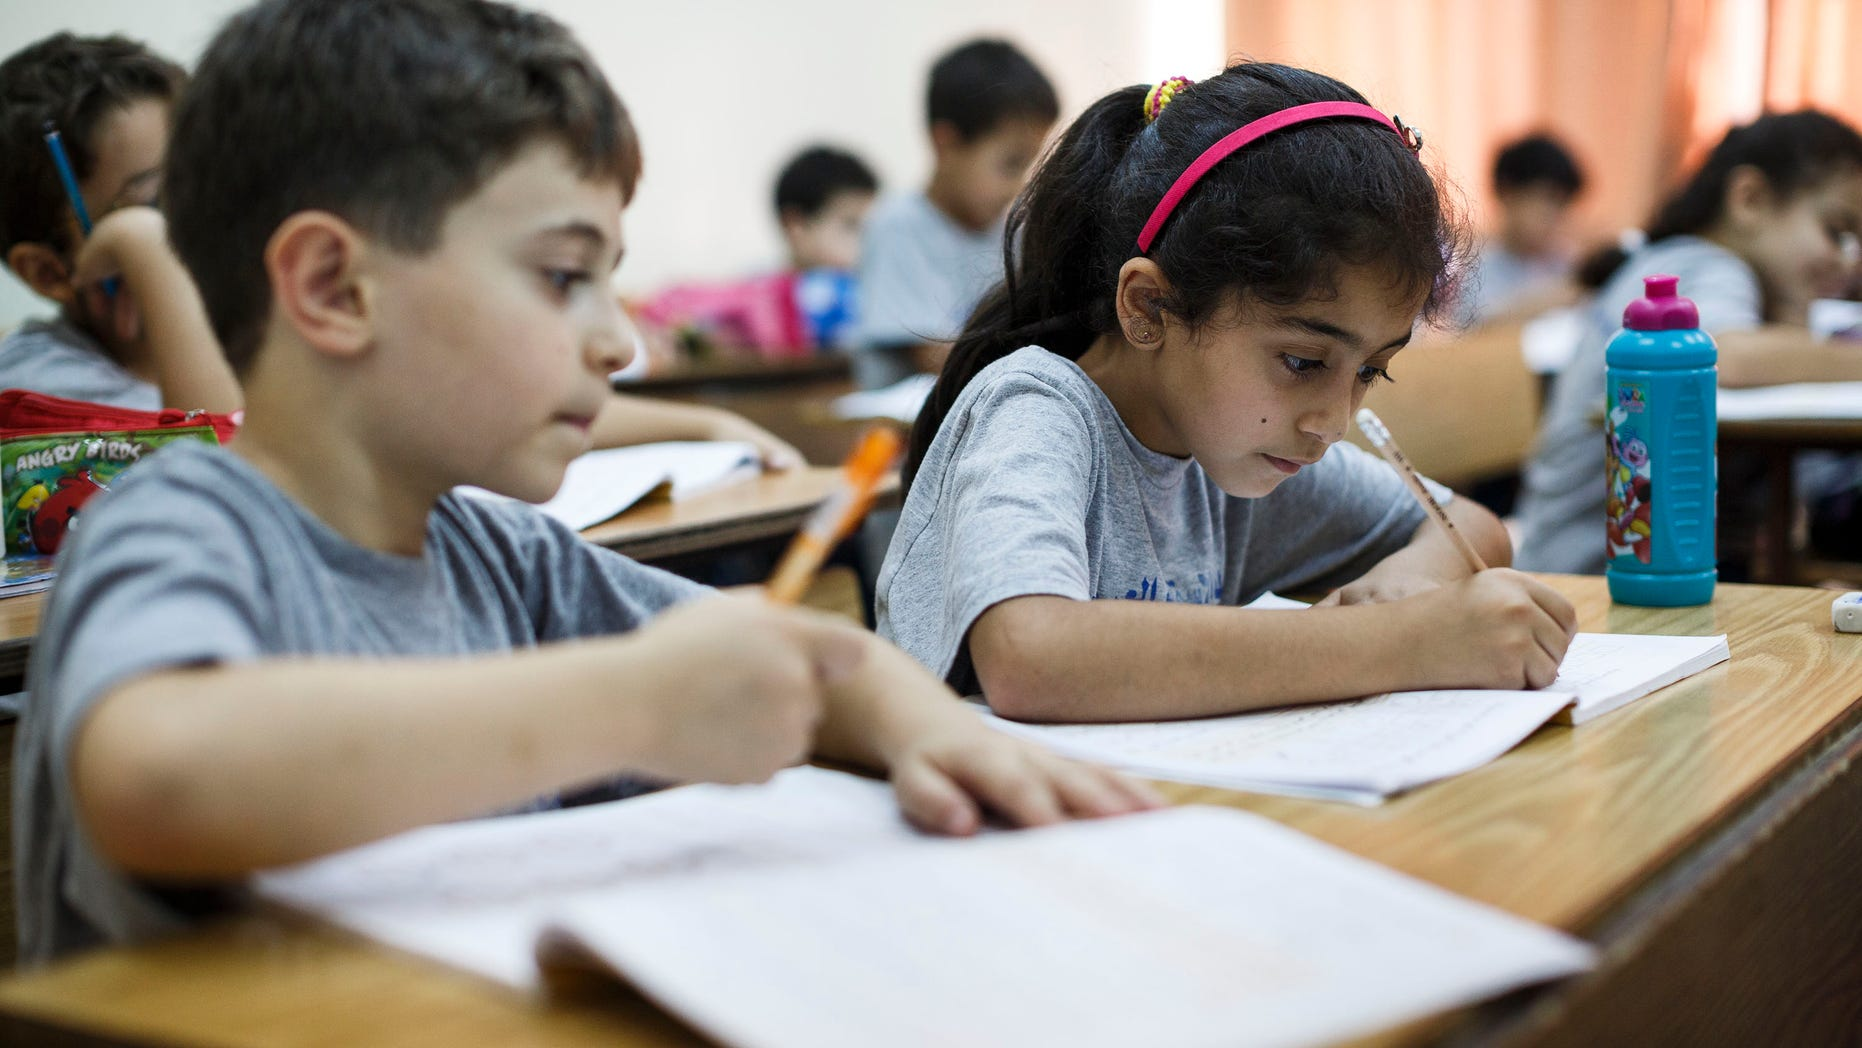 RAMALLAH, WEST BANK - SEPTEMBER 17:  Palestinian children take notes in their notebooks during a math class on September 17, 2013 in Ramallah, West Bank.   The West Bank is a landlocked territory which has an estimated population of  2, 622,544 with Arabs making up almost 80% of the population. It is a disputed territory after Israel captured the land during the six day war in 1967. (Photo by Ilia Yefimovich/Getty Images)